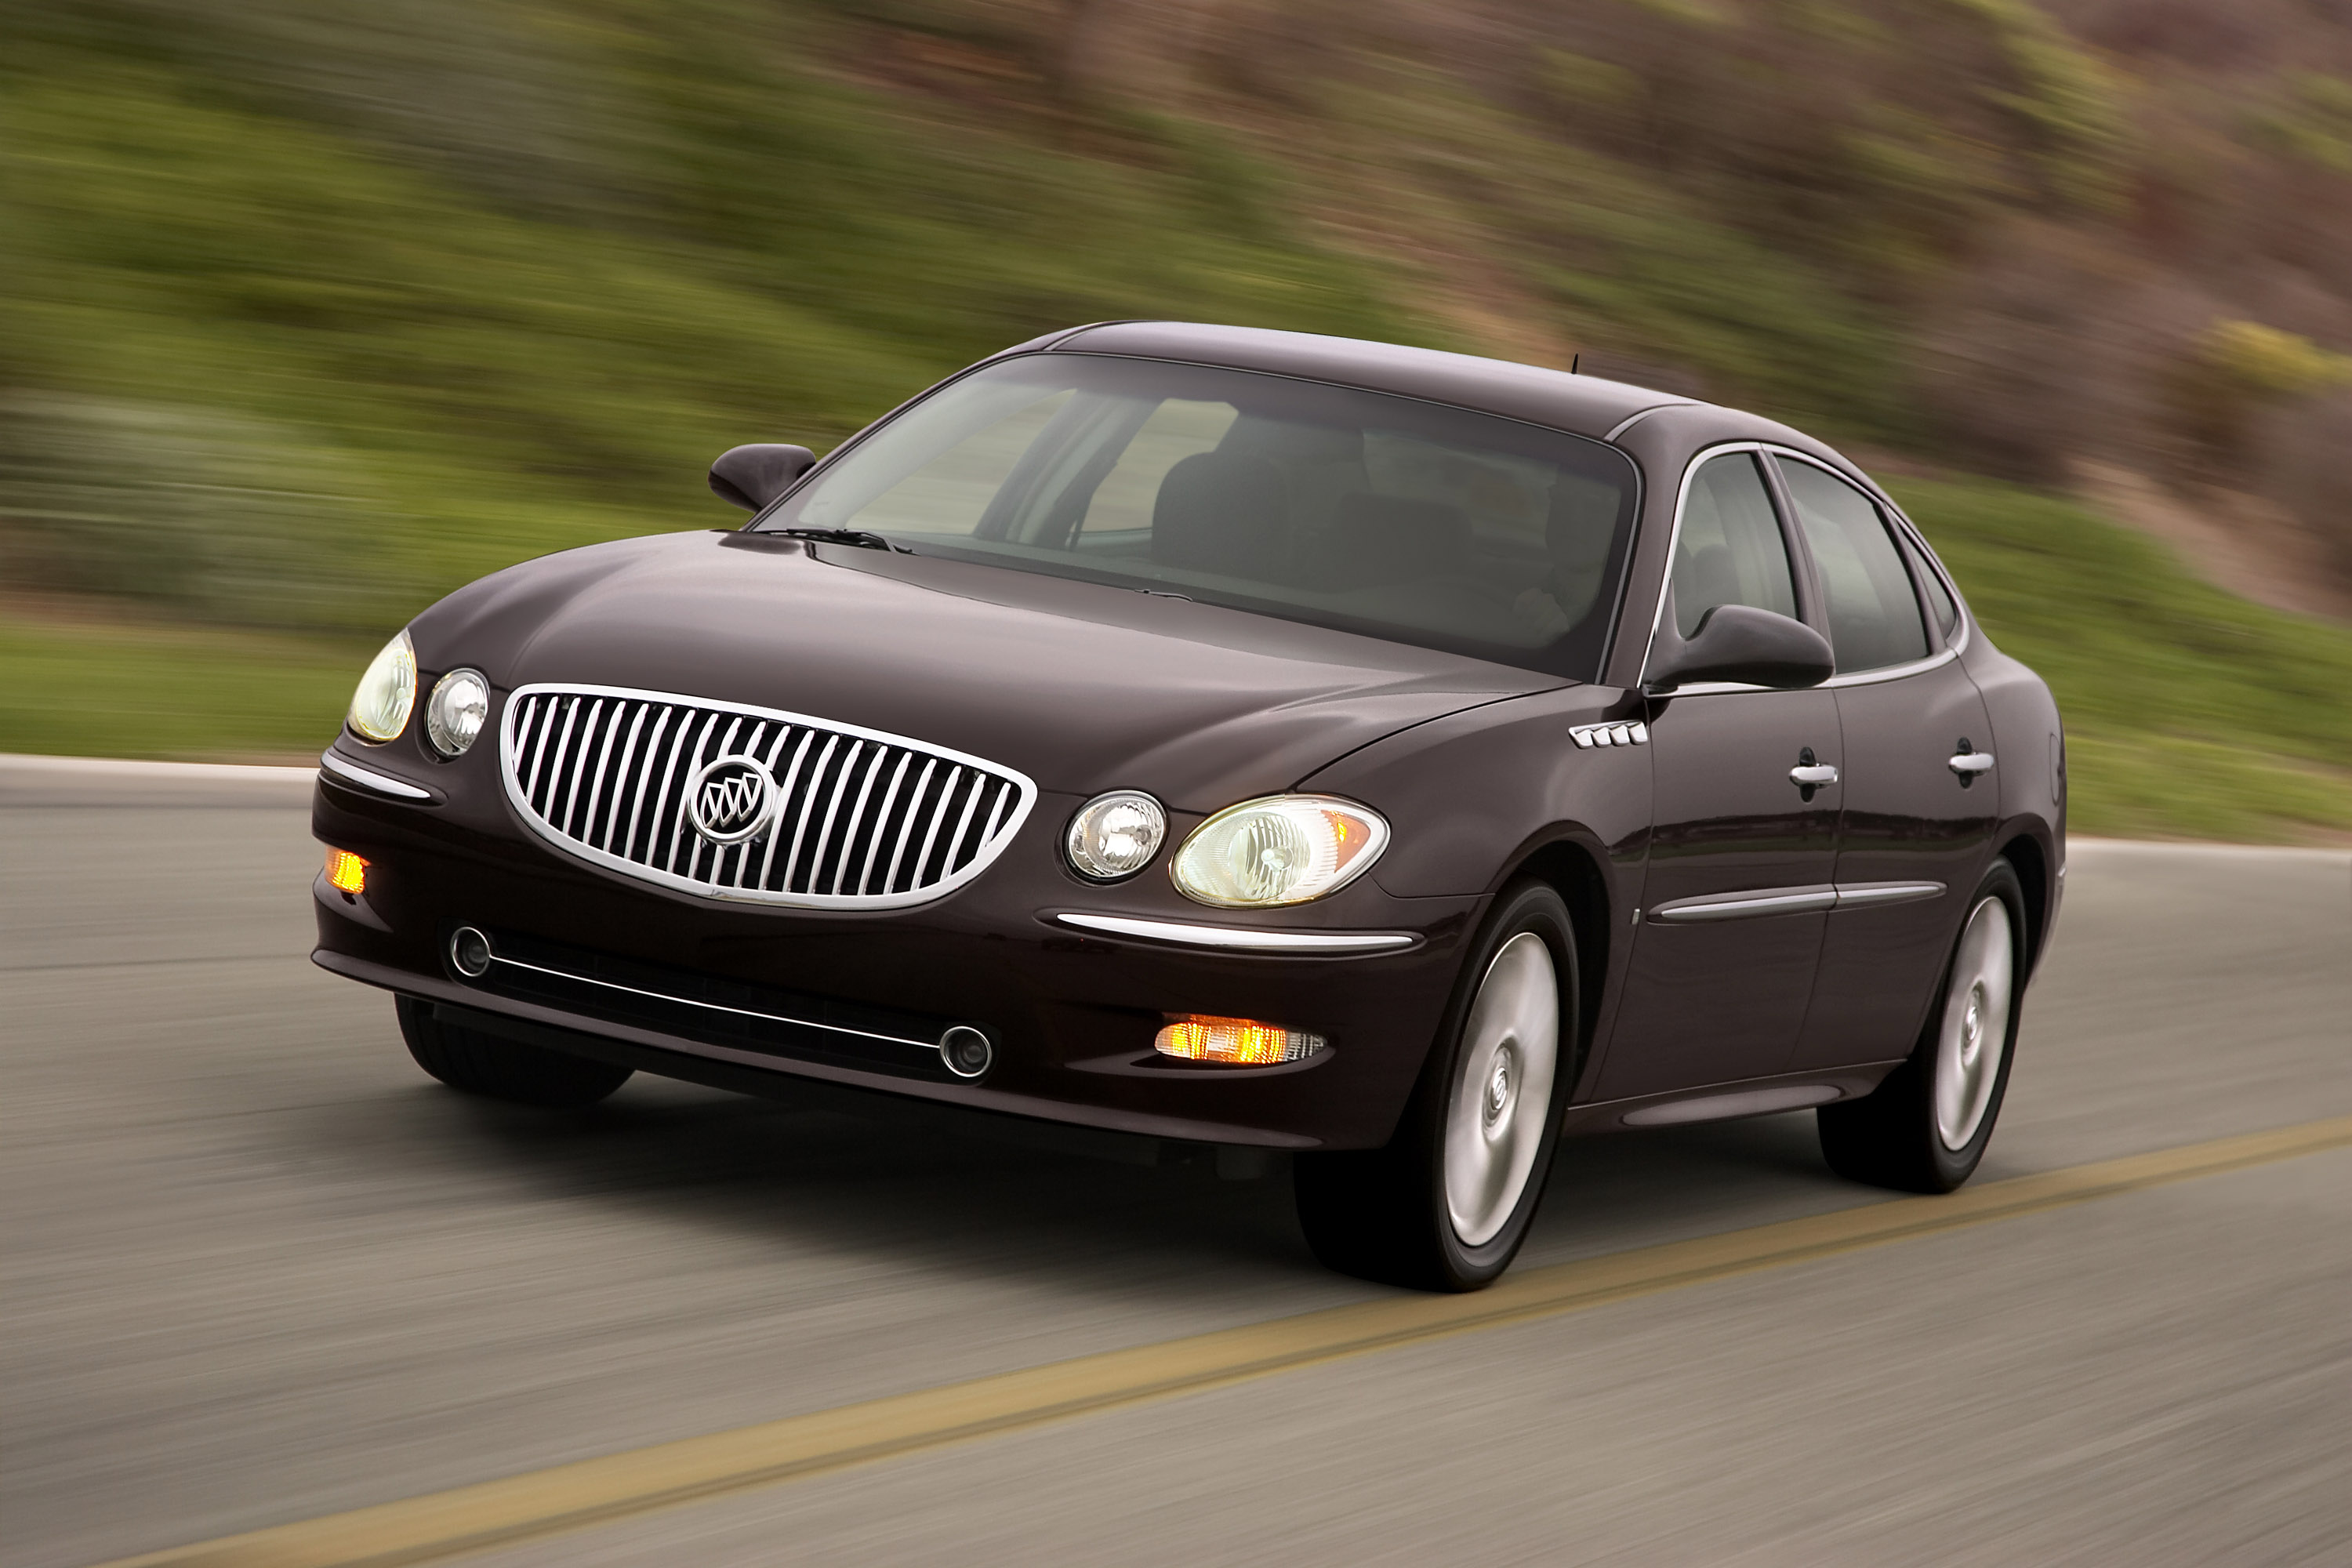 2008 Buick LaCrosse Super Pictures